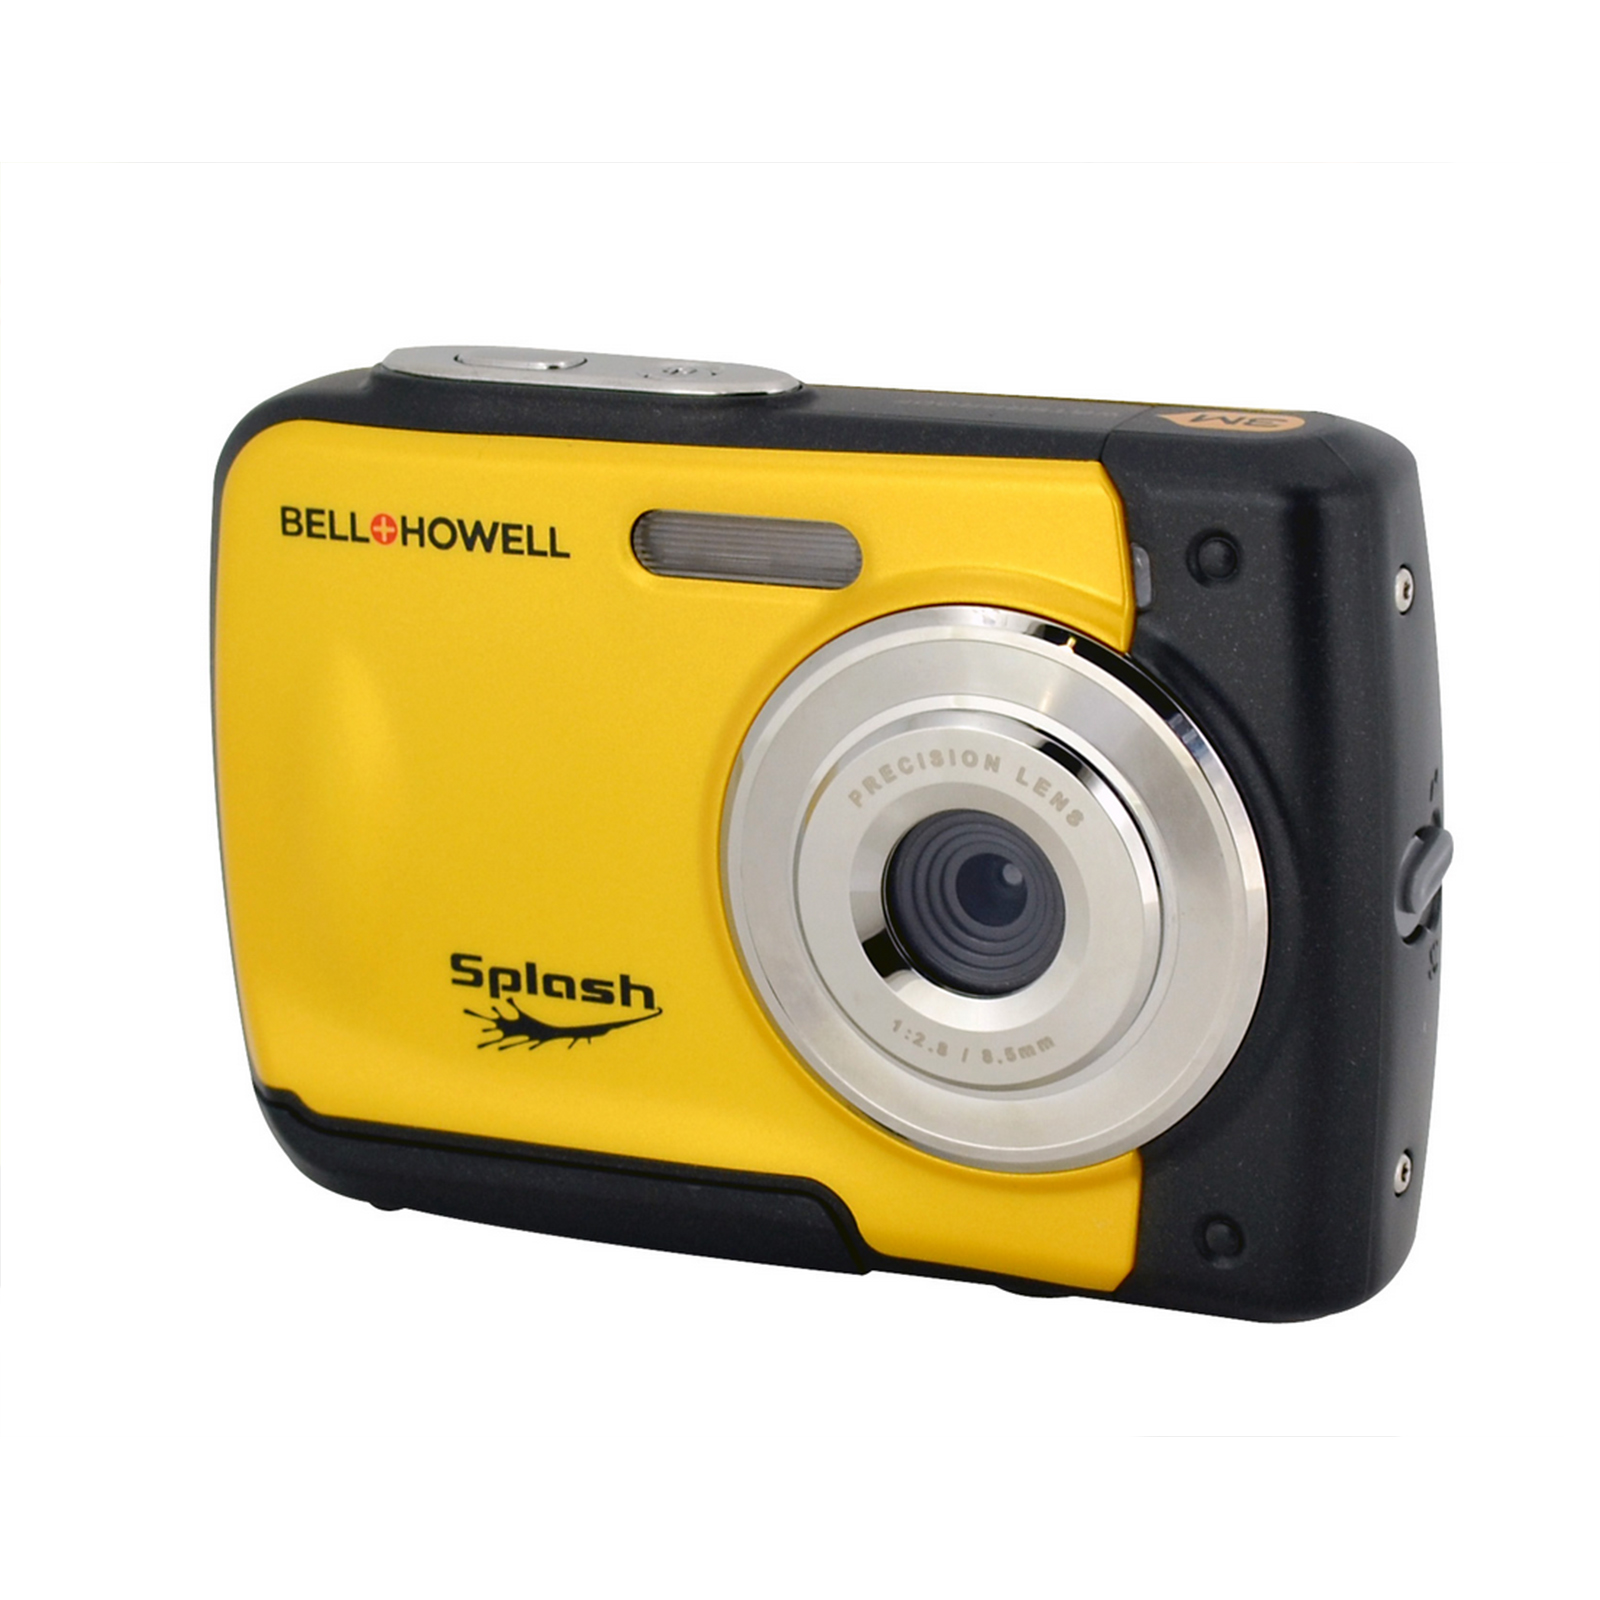 Bell+Howell Splash 2.4 Inch LCD 16GB 8X Camera - Yellow